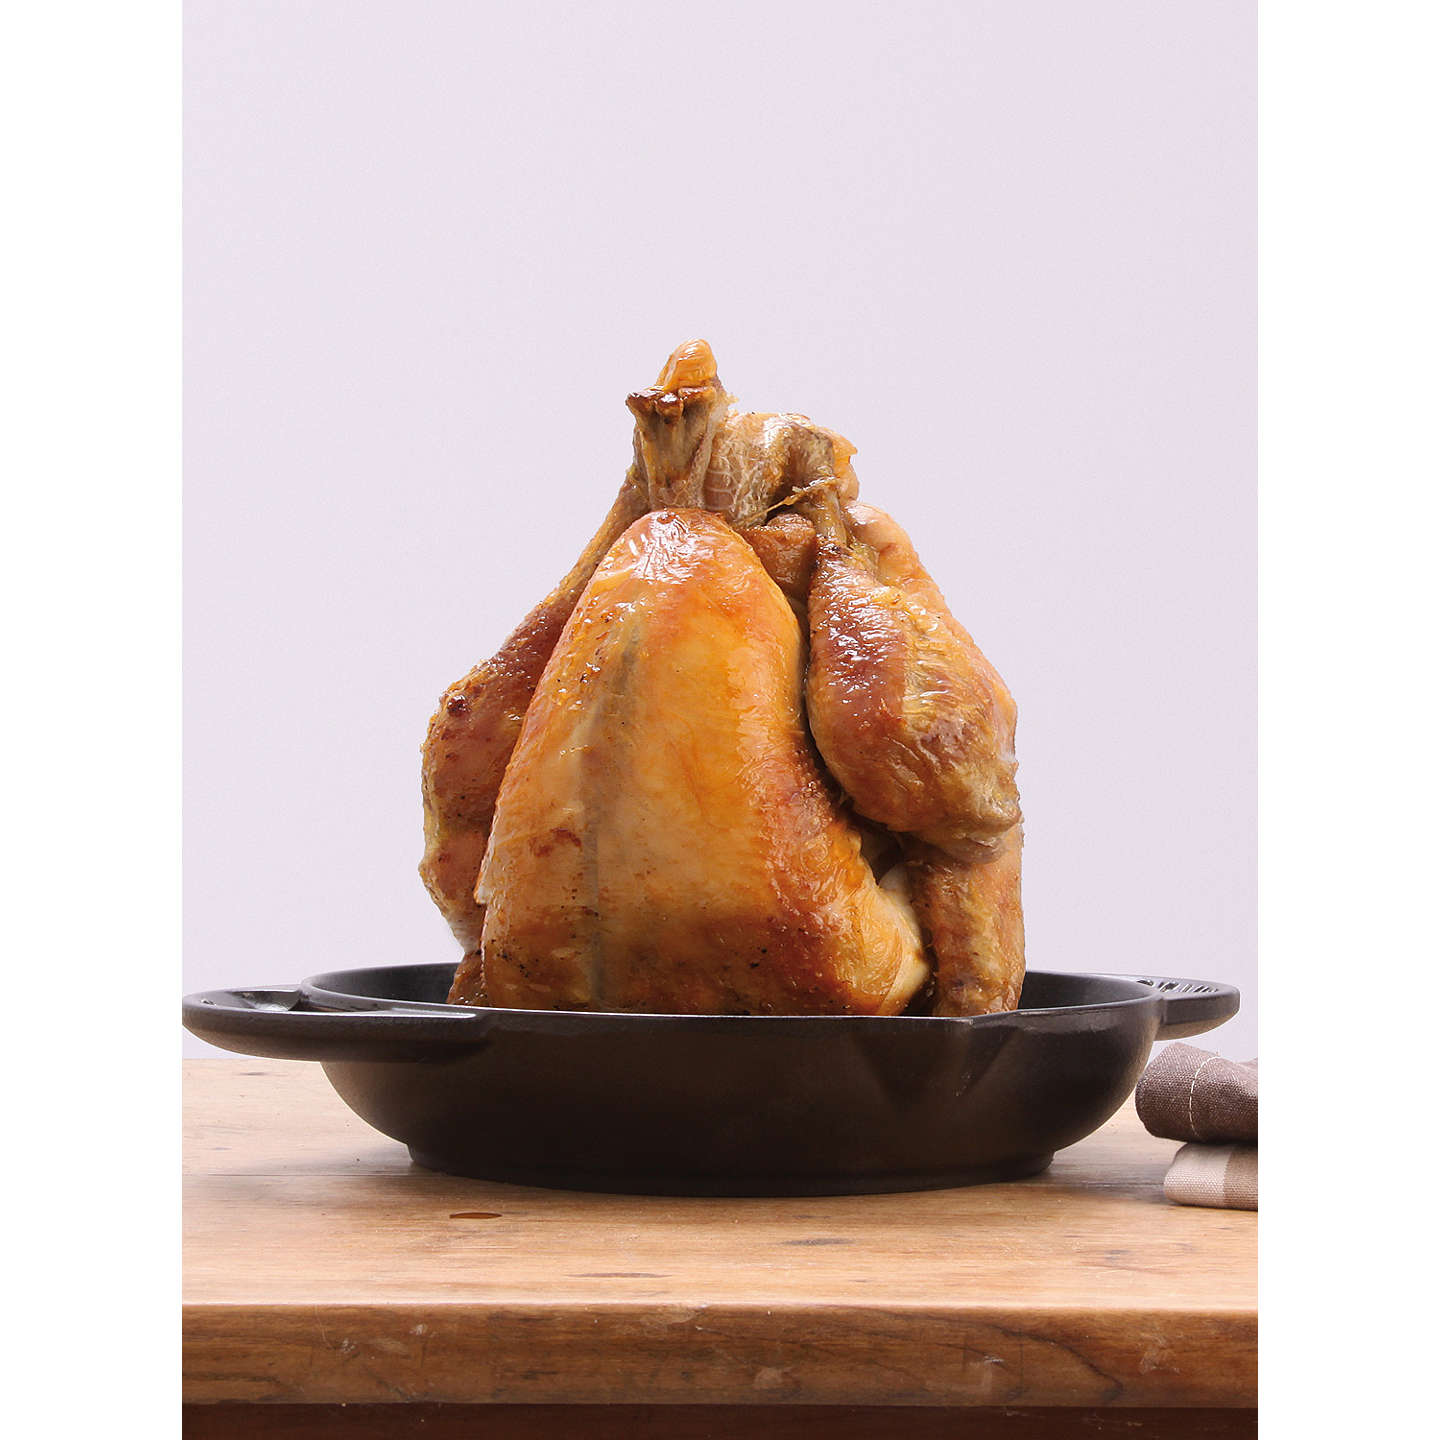 BuySTAUB Cast Iron Vertical Chicken Roaster, Black, 24cm Online at johnlewis.com